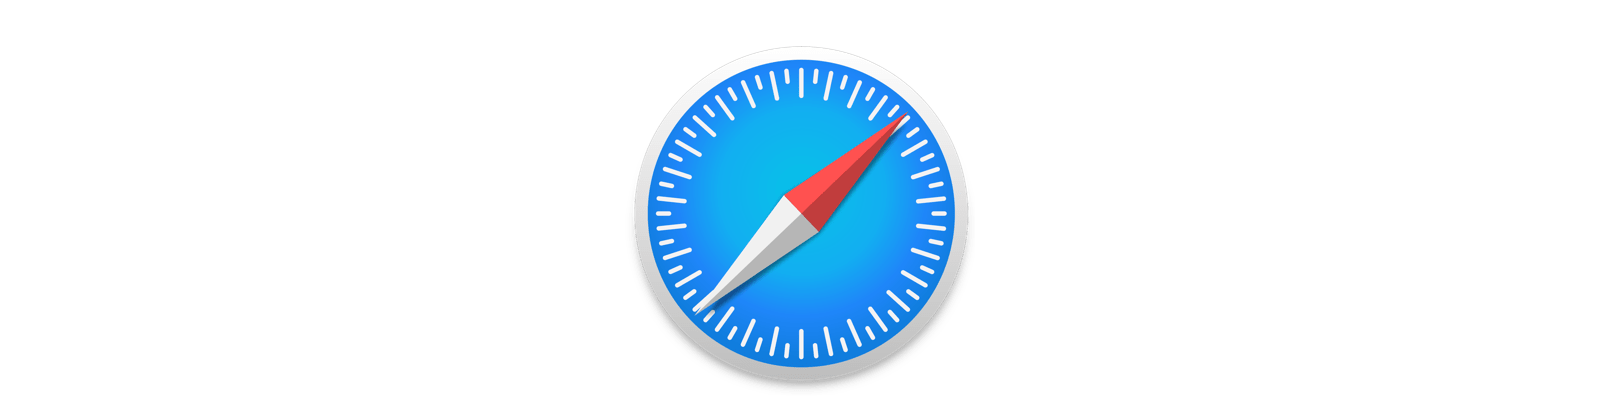 Apple Safari Logo Png Image W